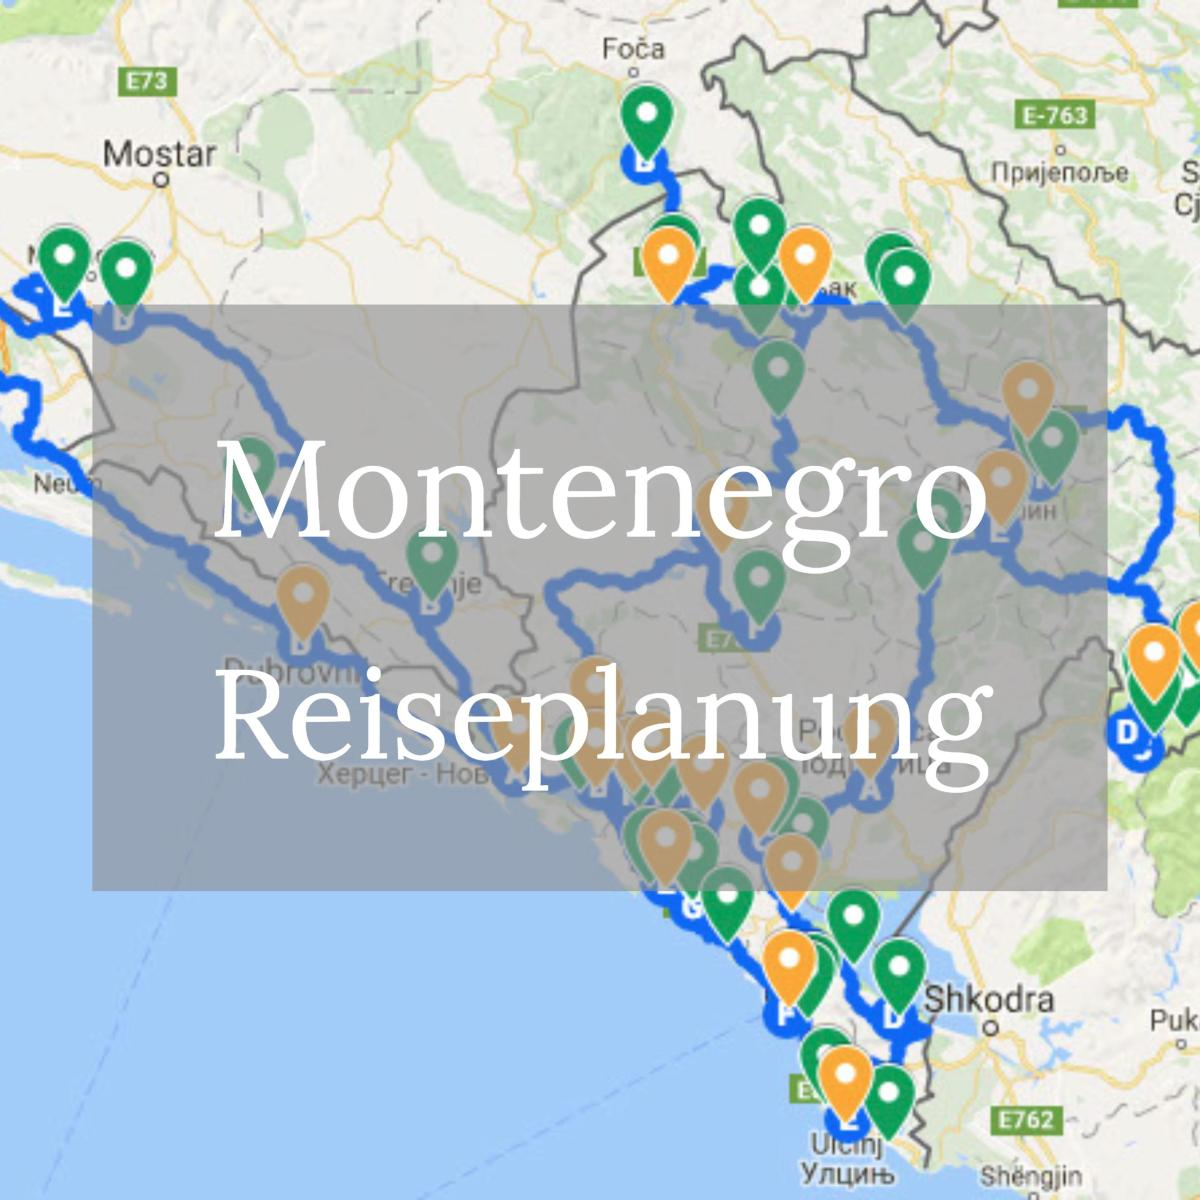 Montenegro Roadtrip - Reiseplanung, Route, Bucketlist & Co